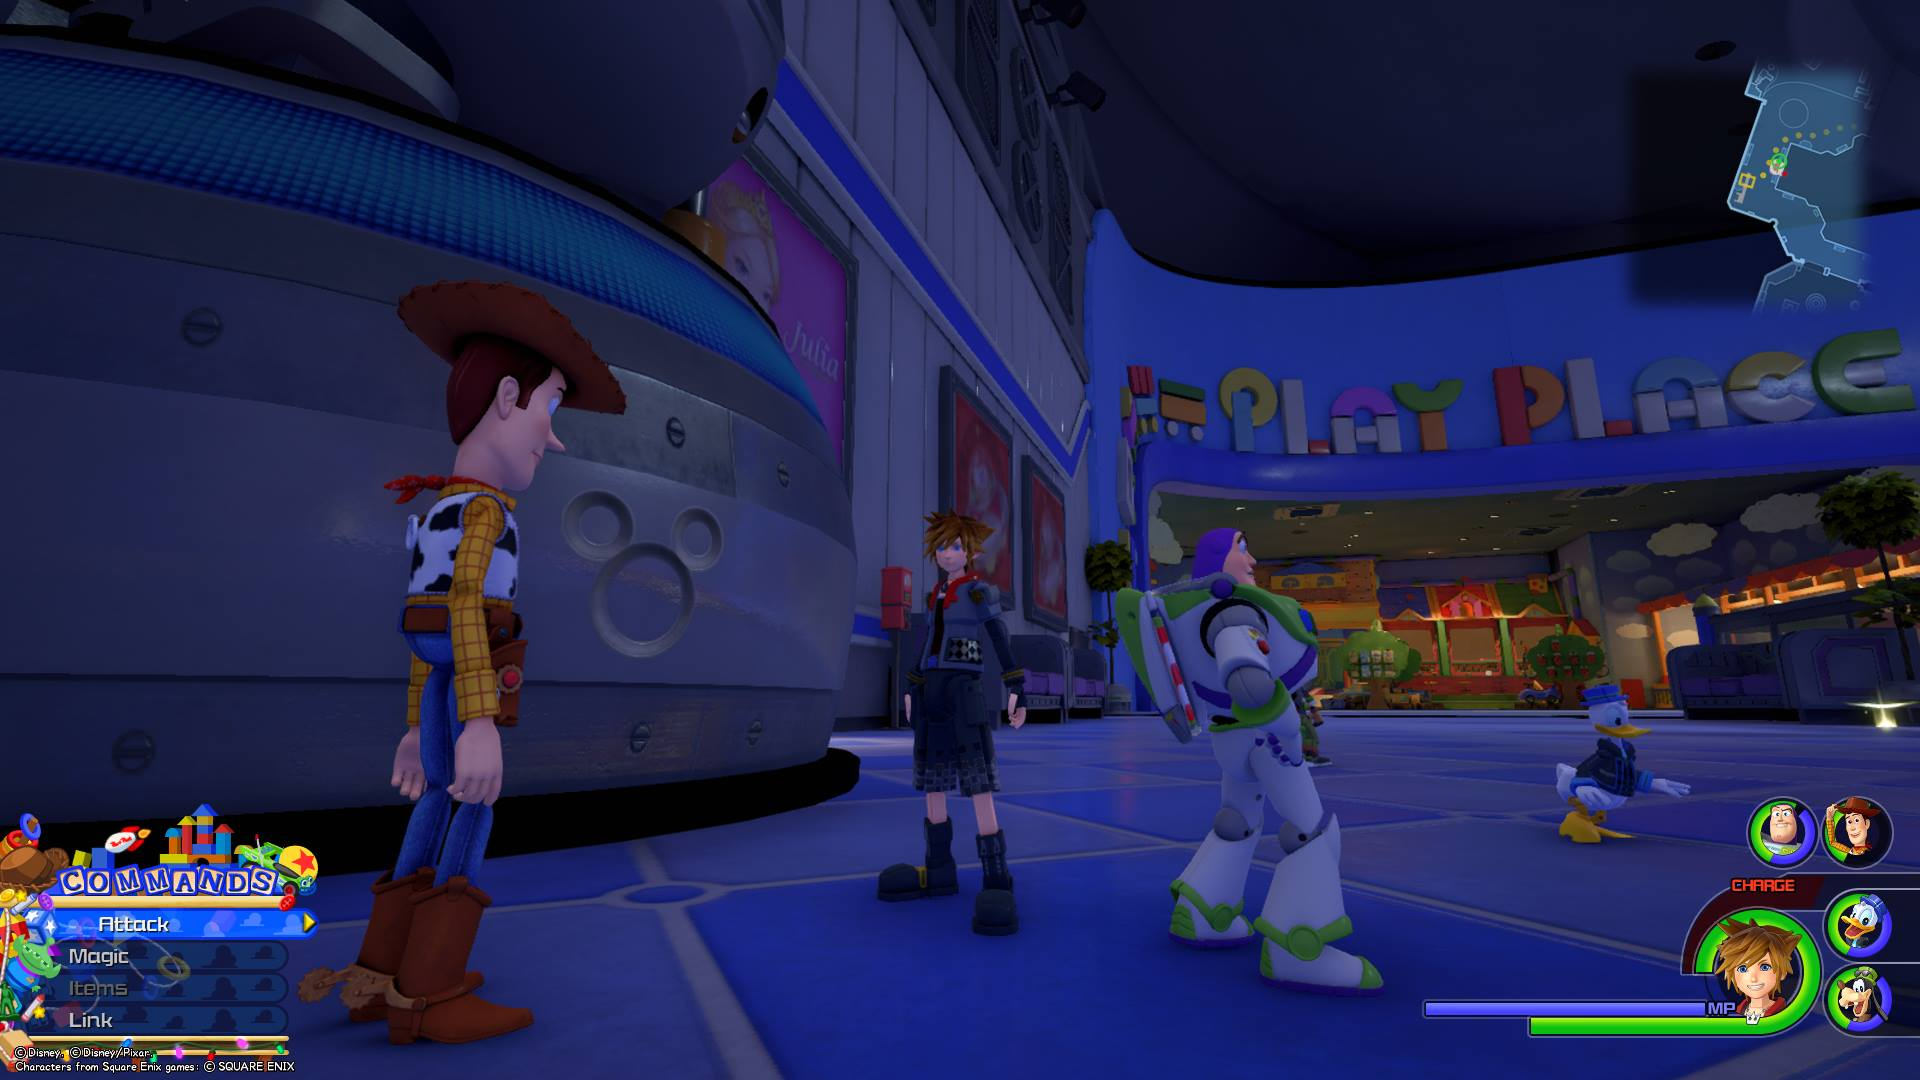 Emblem 8 - Lucky Emblem locations in Toy Box Kingdom Hearts 3